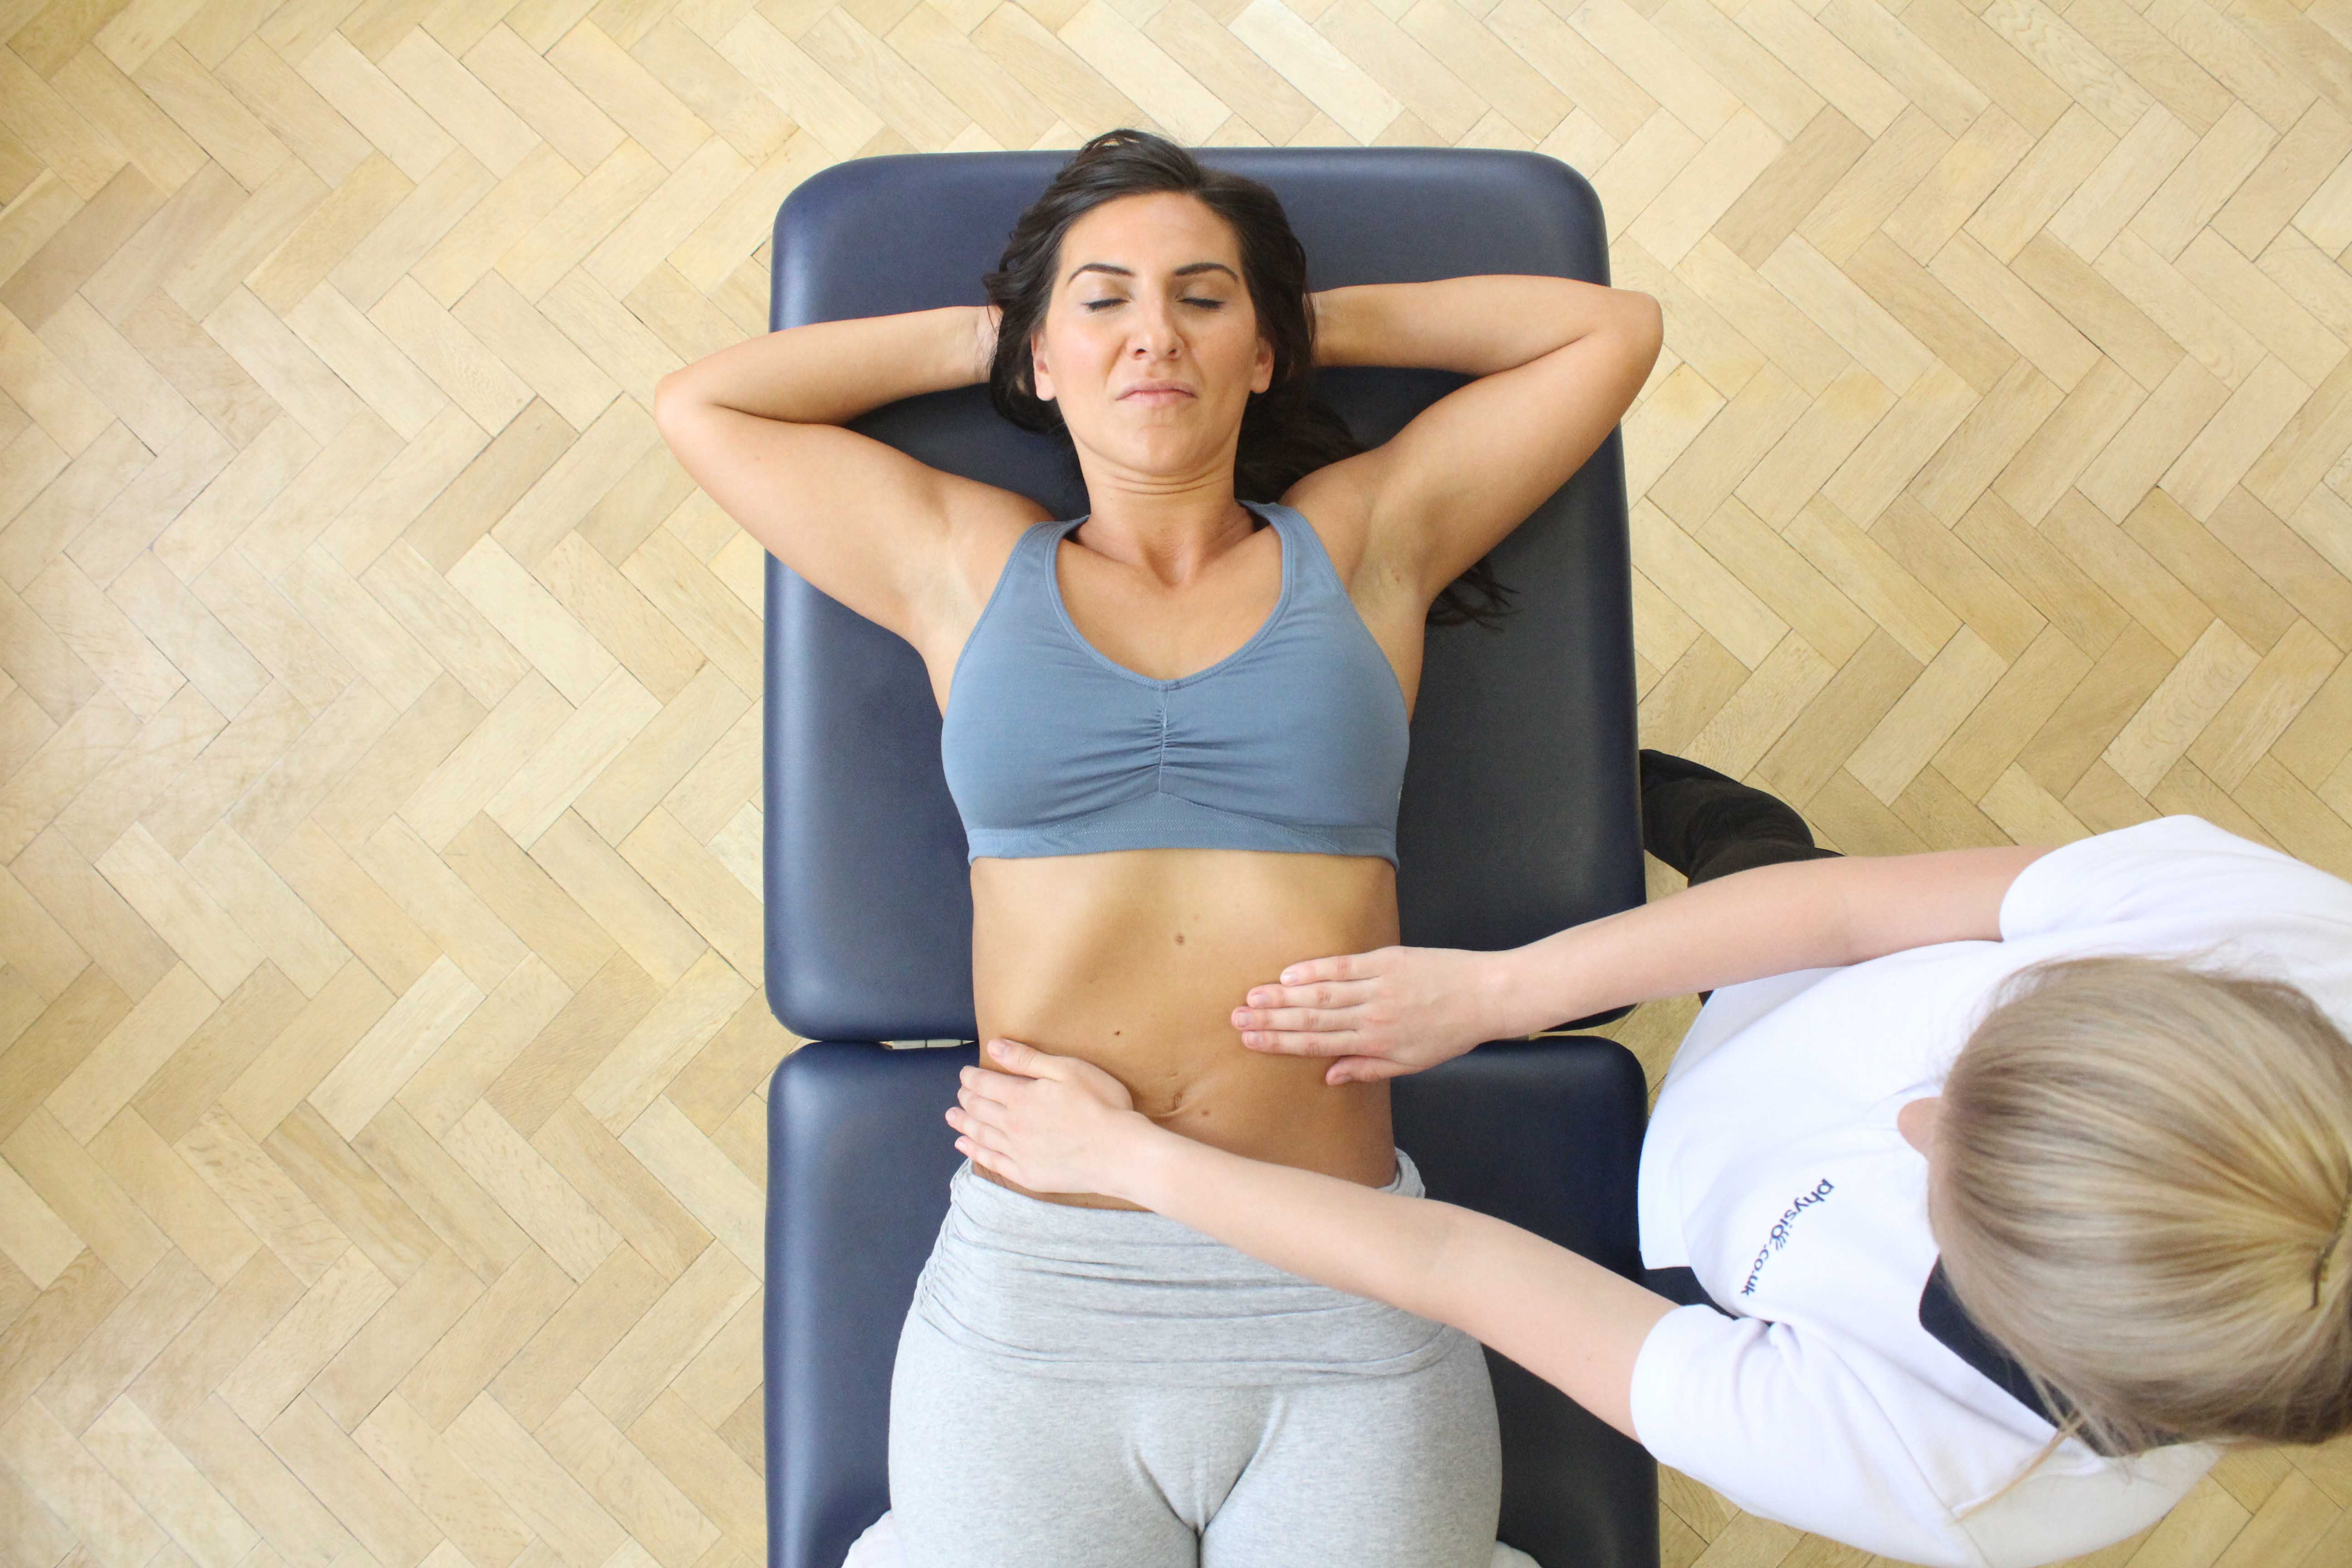 Soft tissue massage of the abdominal muscles by experienced MSK therapist